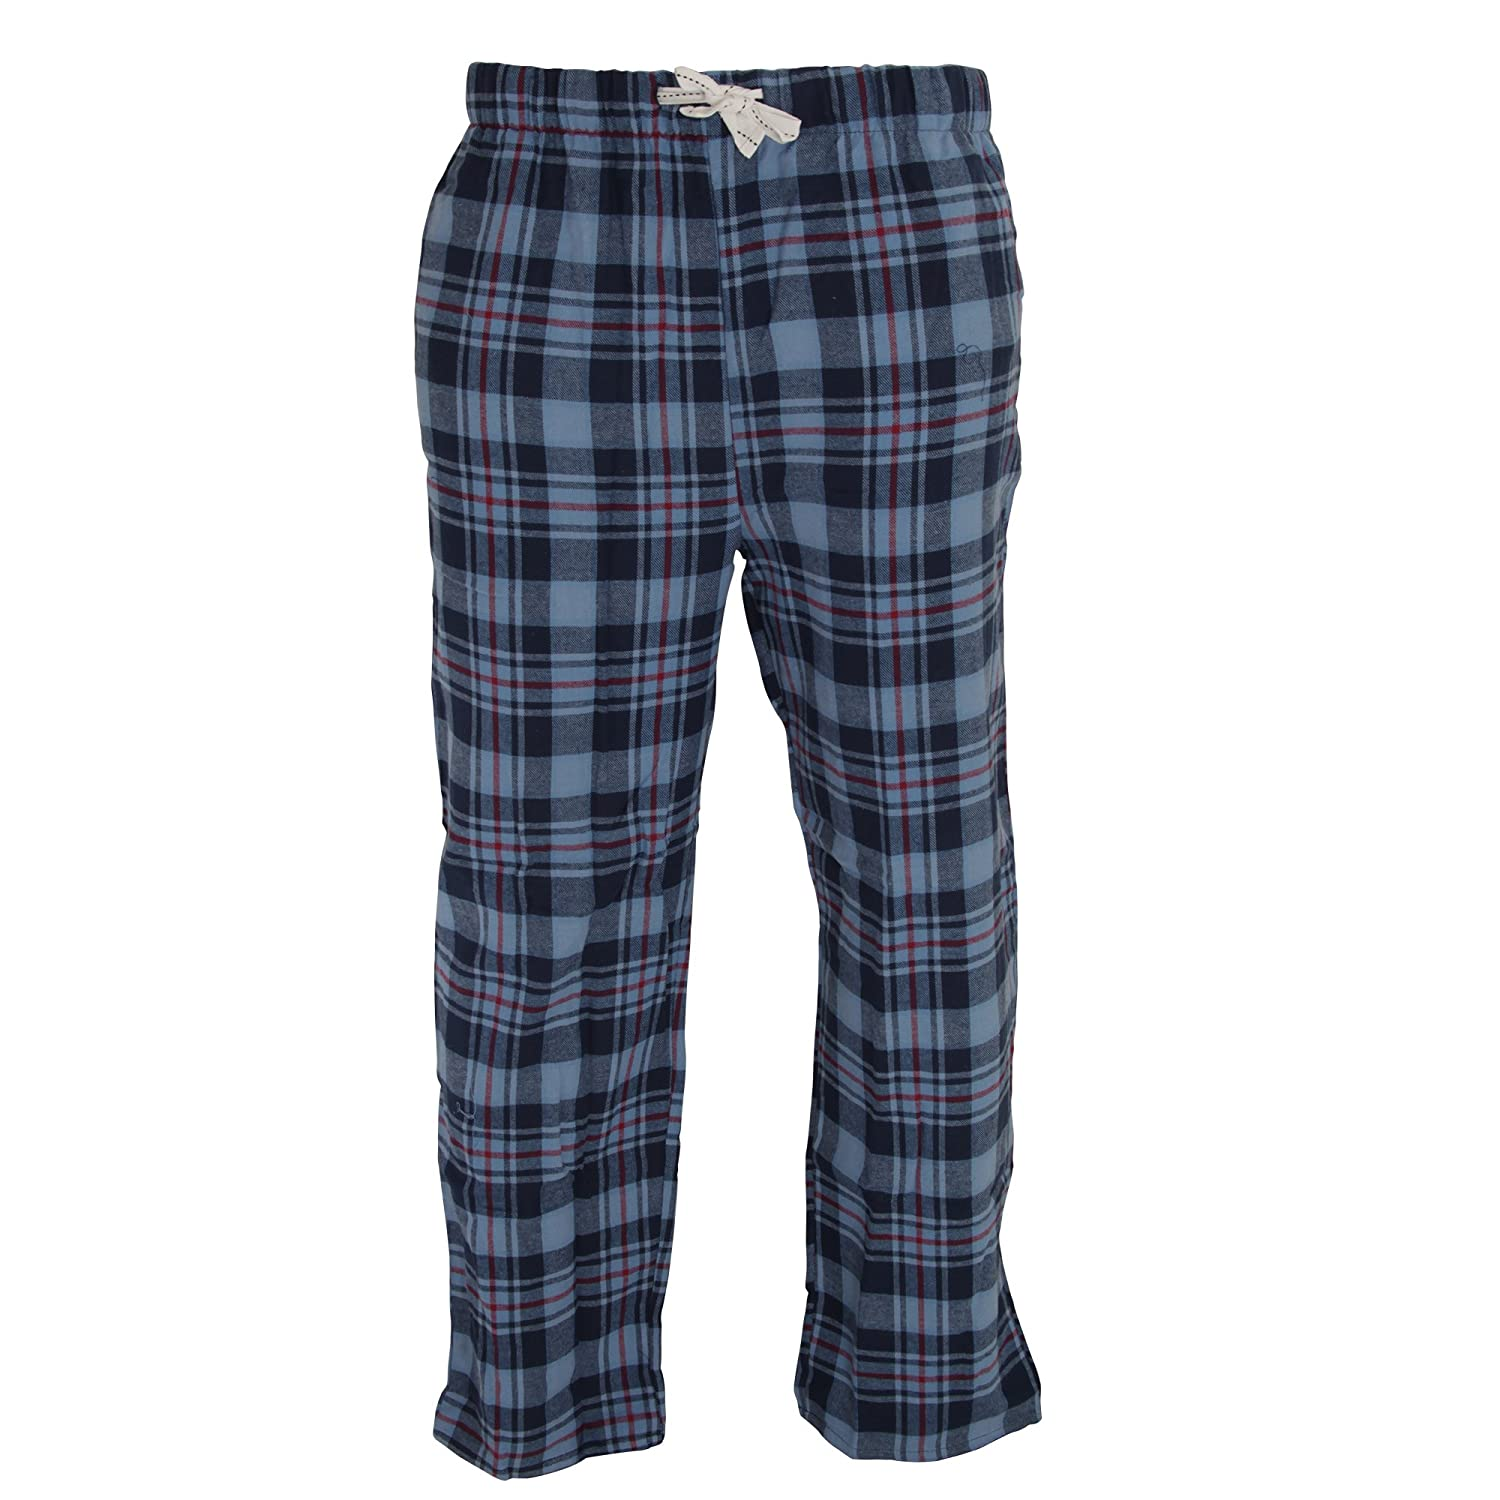 24d7195c21 Cargo Bay Mens Cotton Check Pajama Bottoms Lounge Pants at Amazon Men s  Clothing store